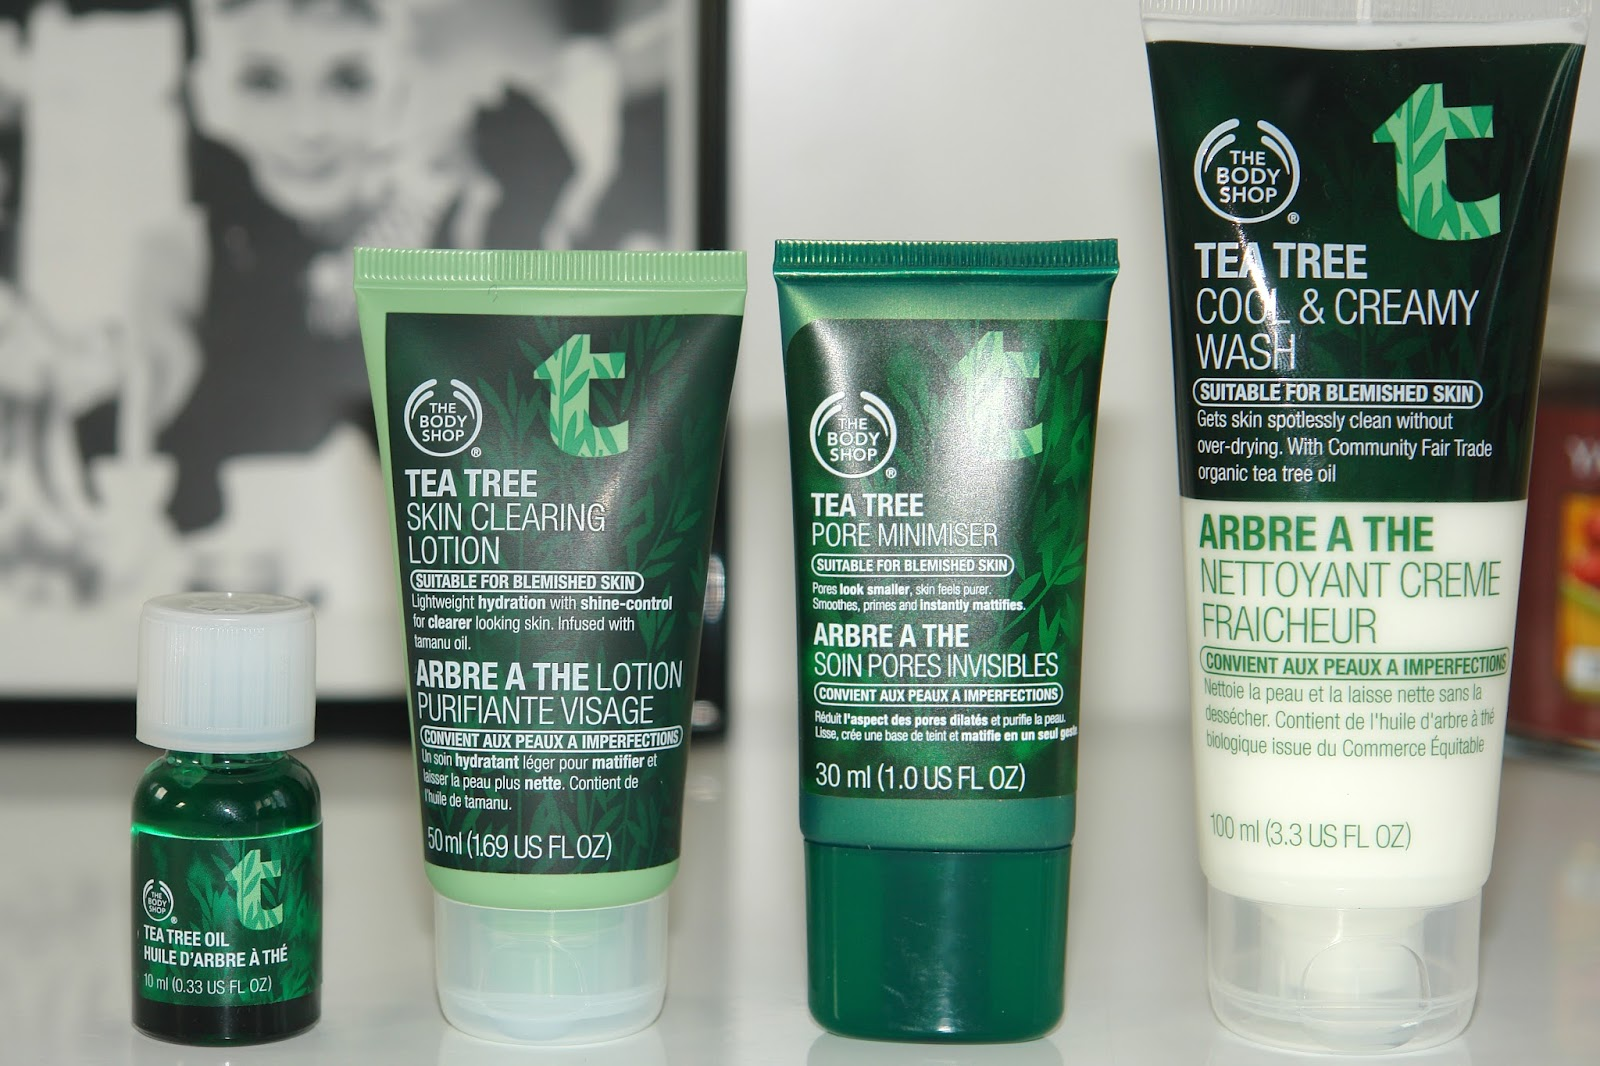 The Body Shop Tea Tree range, beauty, review, skincare, The Body Shop, The Body Shop Tea Tree Oil, The Body Shop Tea Tree Skin Clearing Lotion, The Body Shop Tea Tree Pore Minimiser, The Body Shop Tea Tree Cool & Creamy Wash, UK beauty blog